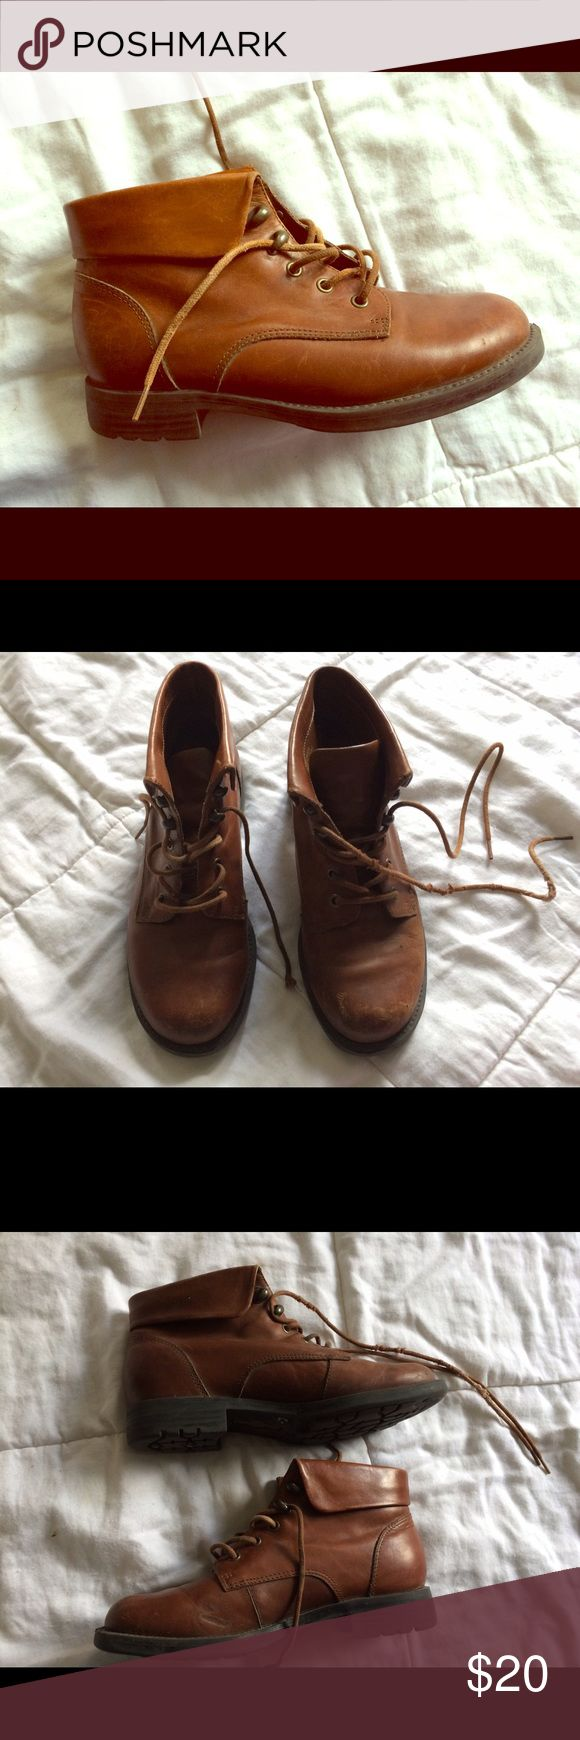 Earth Shoes Ankle Boots Earth Shoes Boots in decent condition - well used and super cute! Earth Shoes Shoes Ankle Boots & Booties